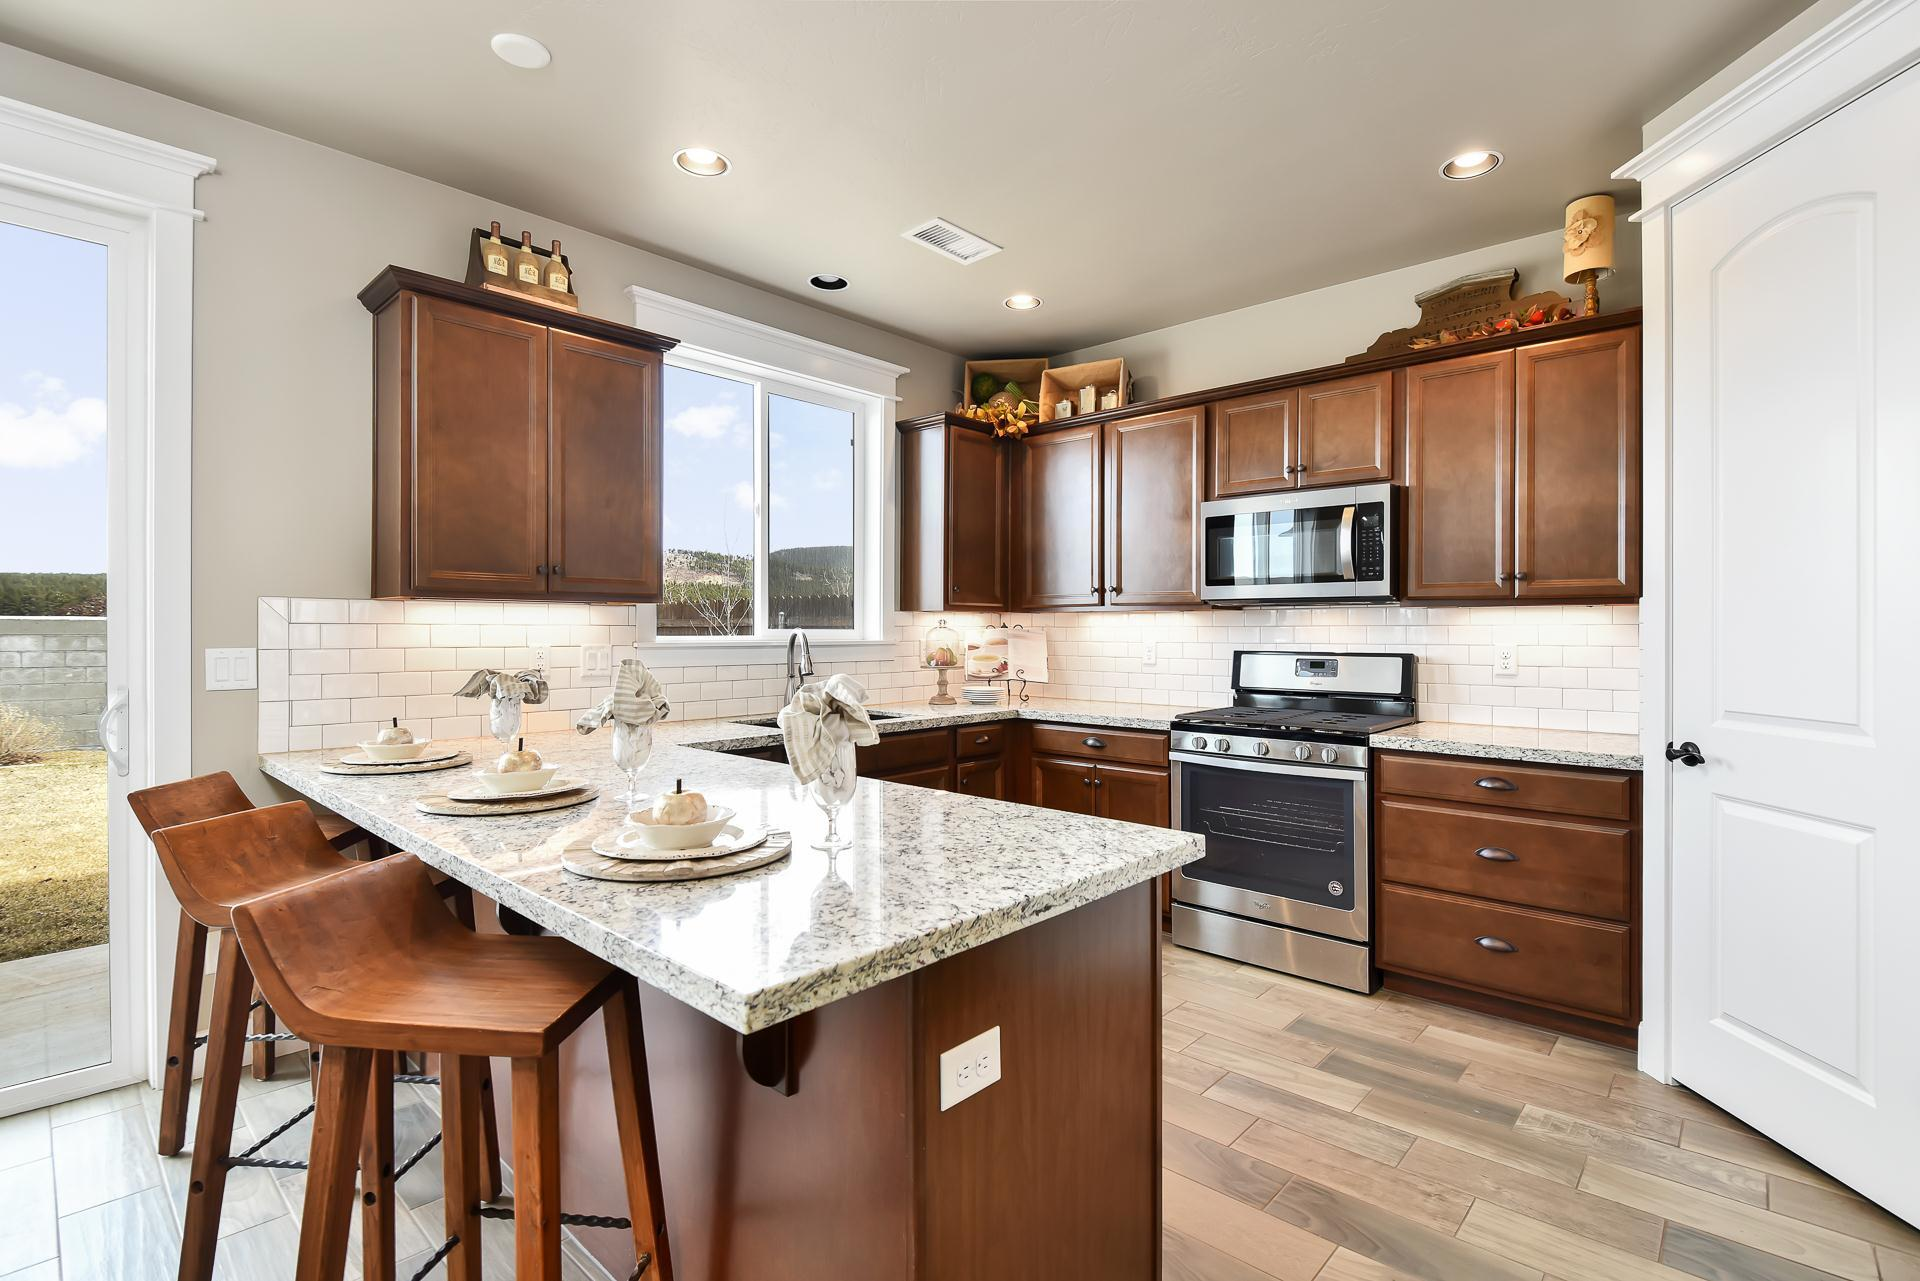 Kitchen featured in the Flagstaff Meadows Plan 1941 By Capstone Homes in Flagstaff, AZ